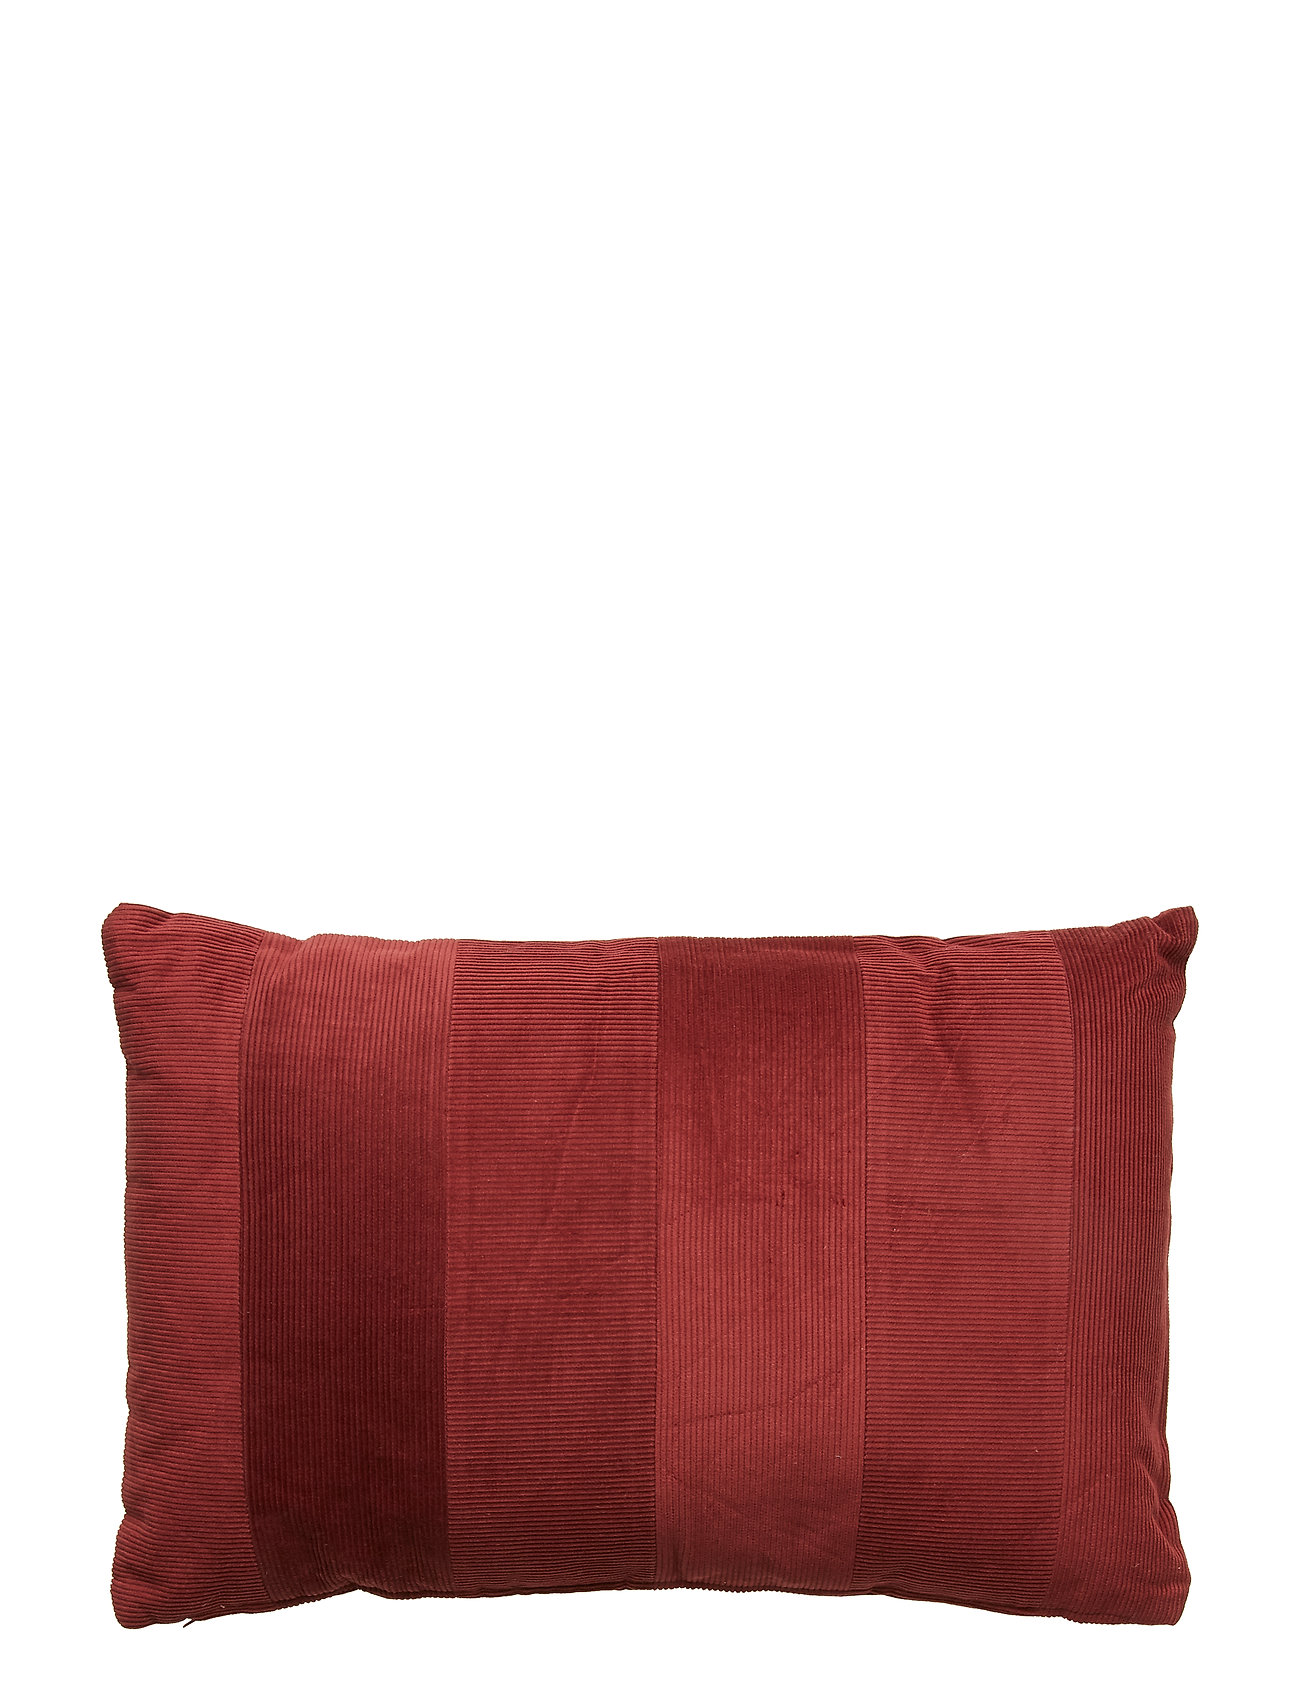 Bloomingville cushion - RED